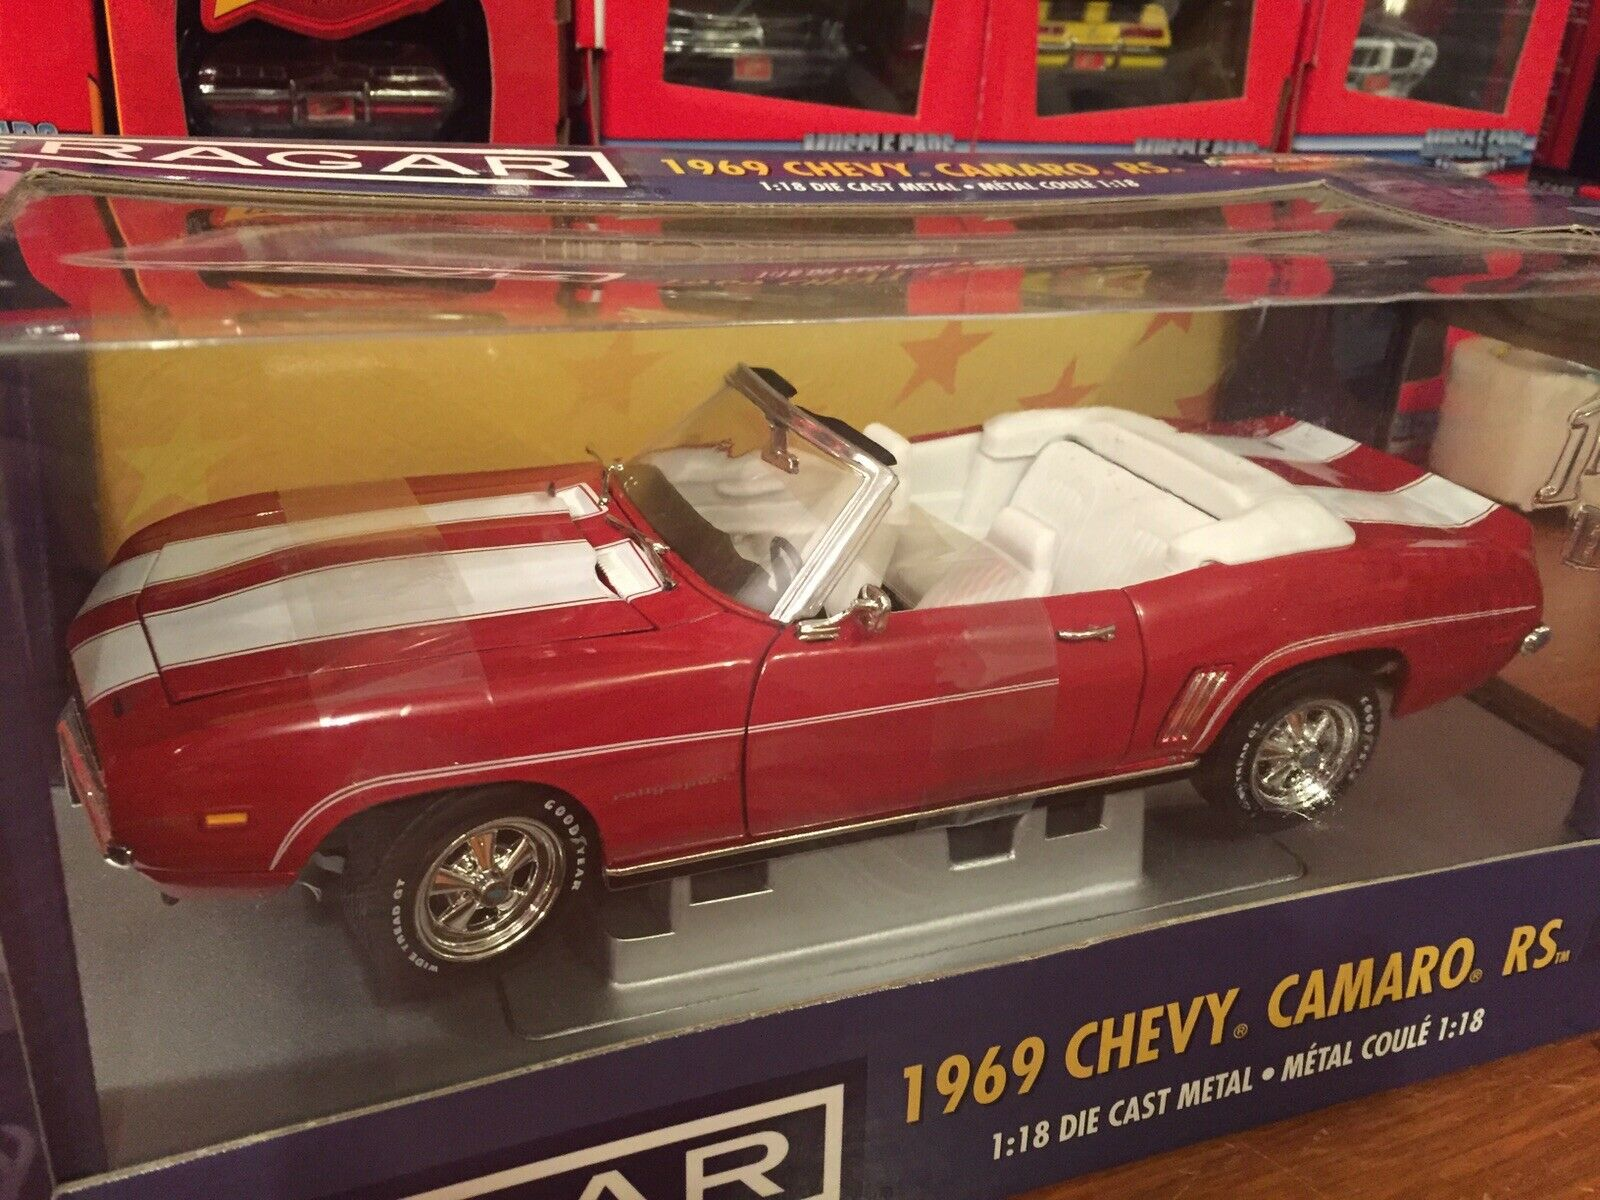 Ertl 1 18 1969 Chevy Camaro RS Congreenible 1 1 1 Of 5000 Item 33780 7ebc51